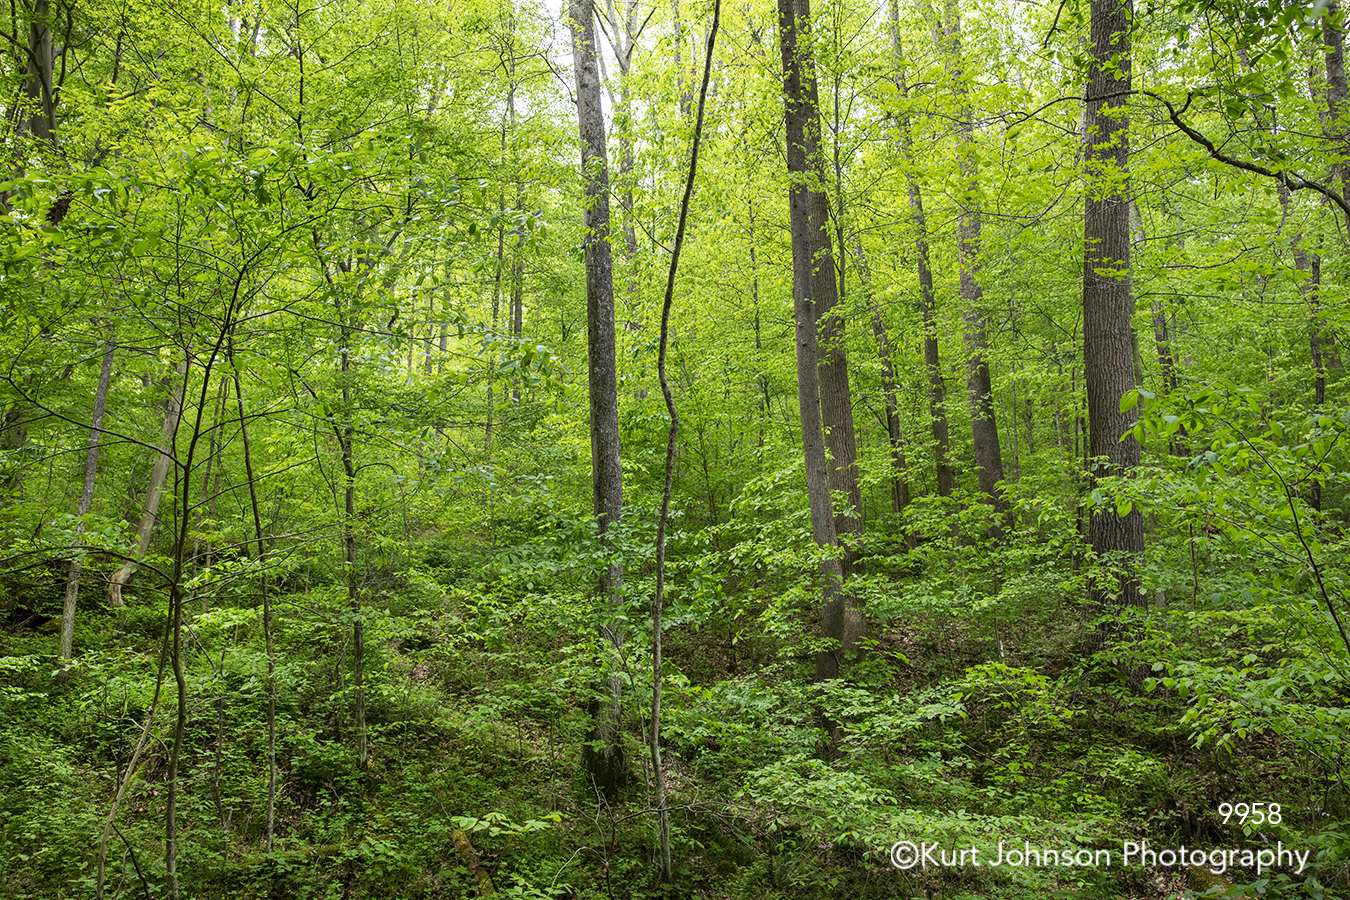 green tree trees branches forest leaves landscape